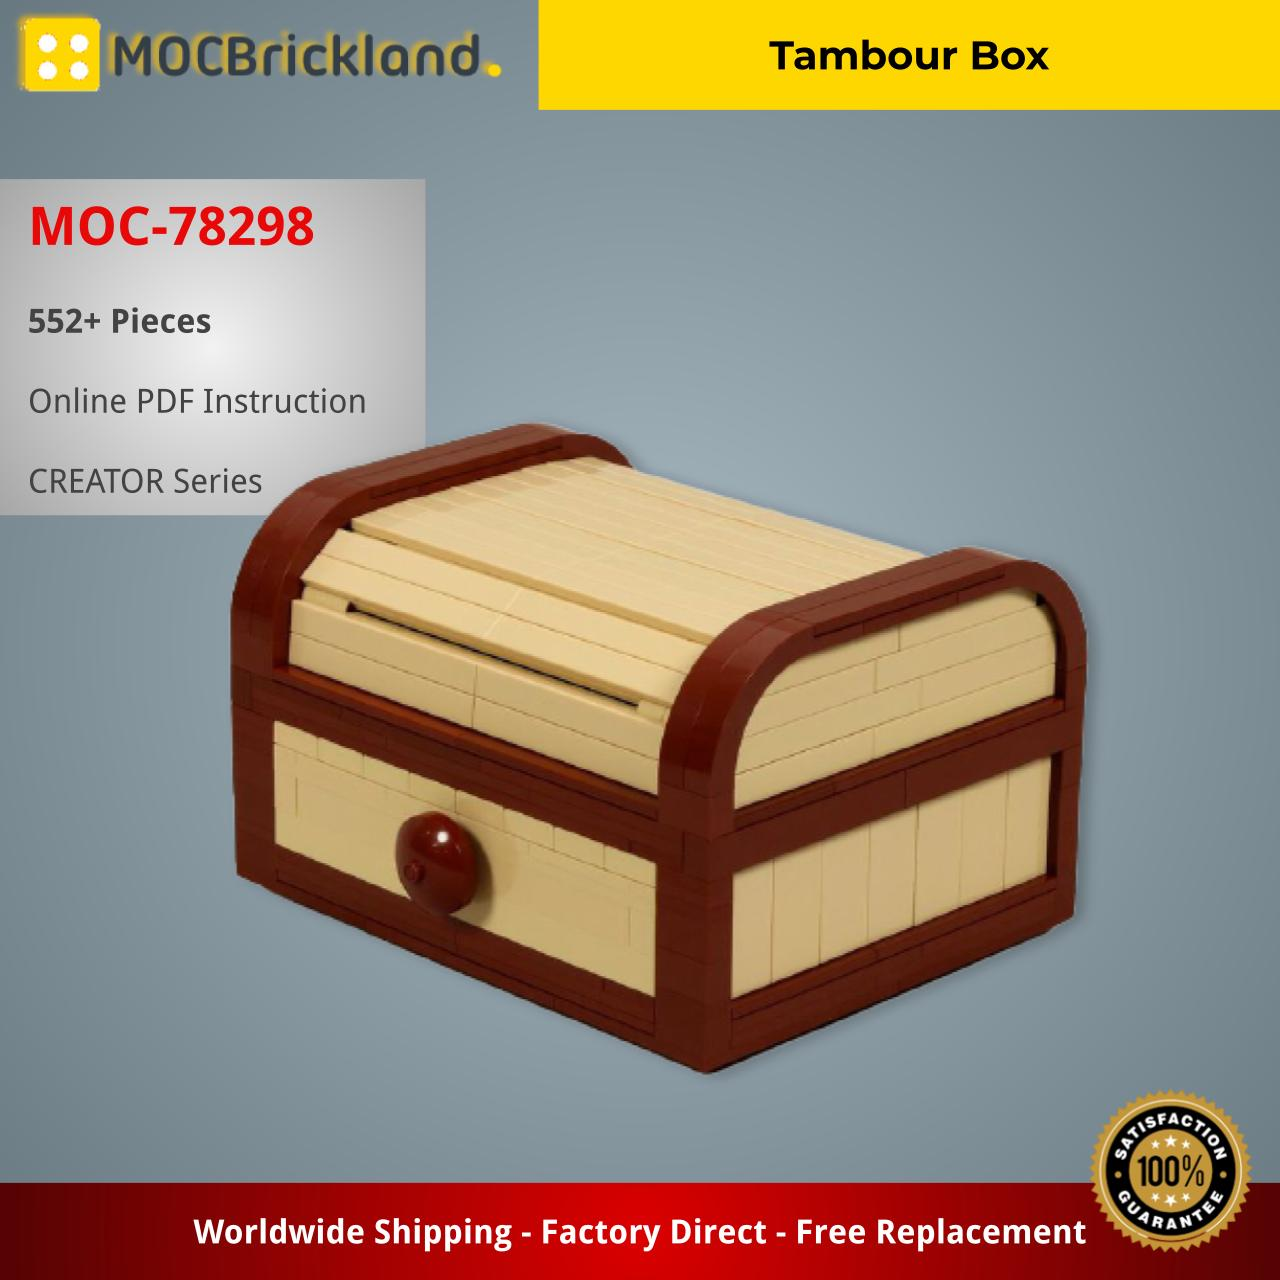 Tambour Box CREATOR MOC-78298 by JKBrickworks with 552 pieces